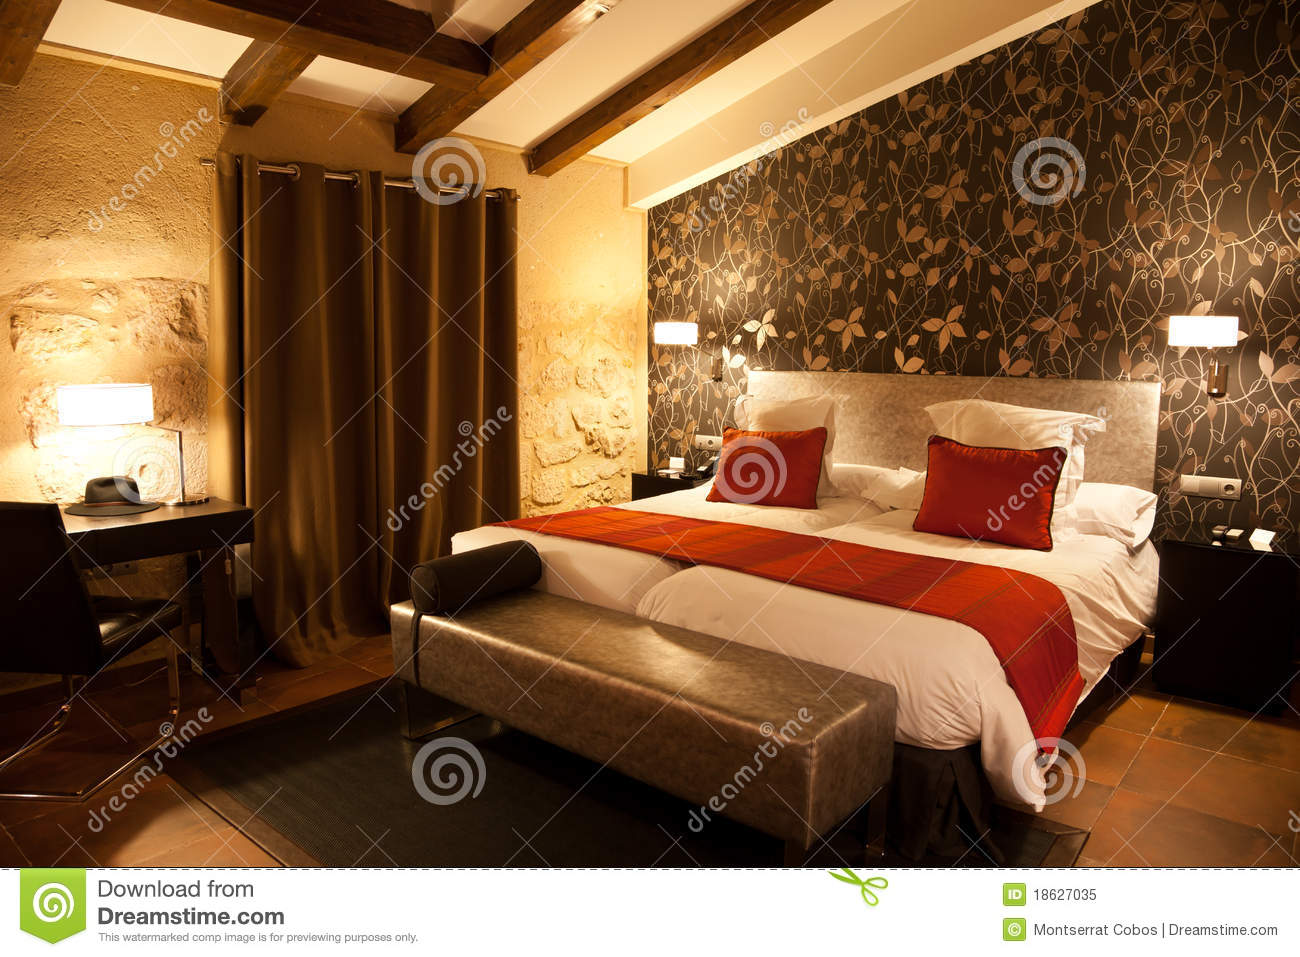 Modern mansard bedroom stock image image of luxury - Camera da letto in mansarda bassa ...